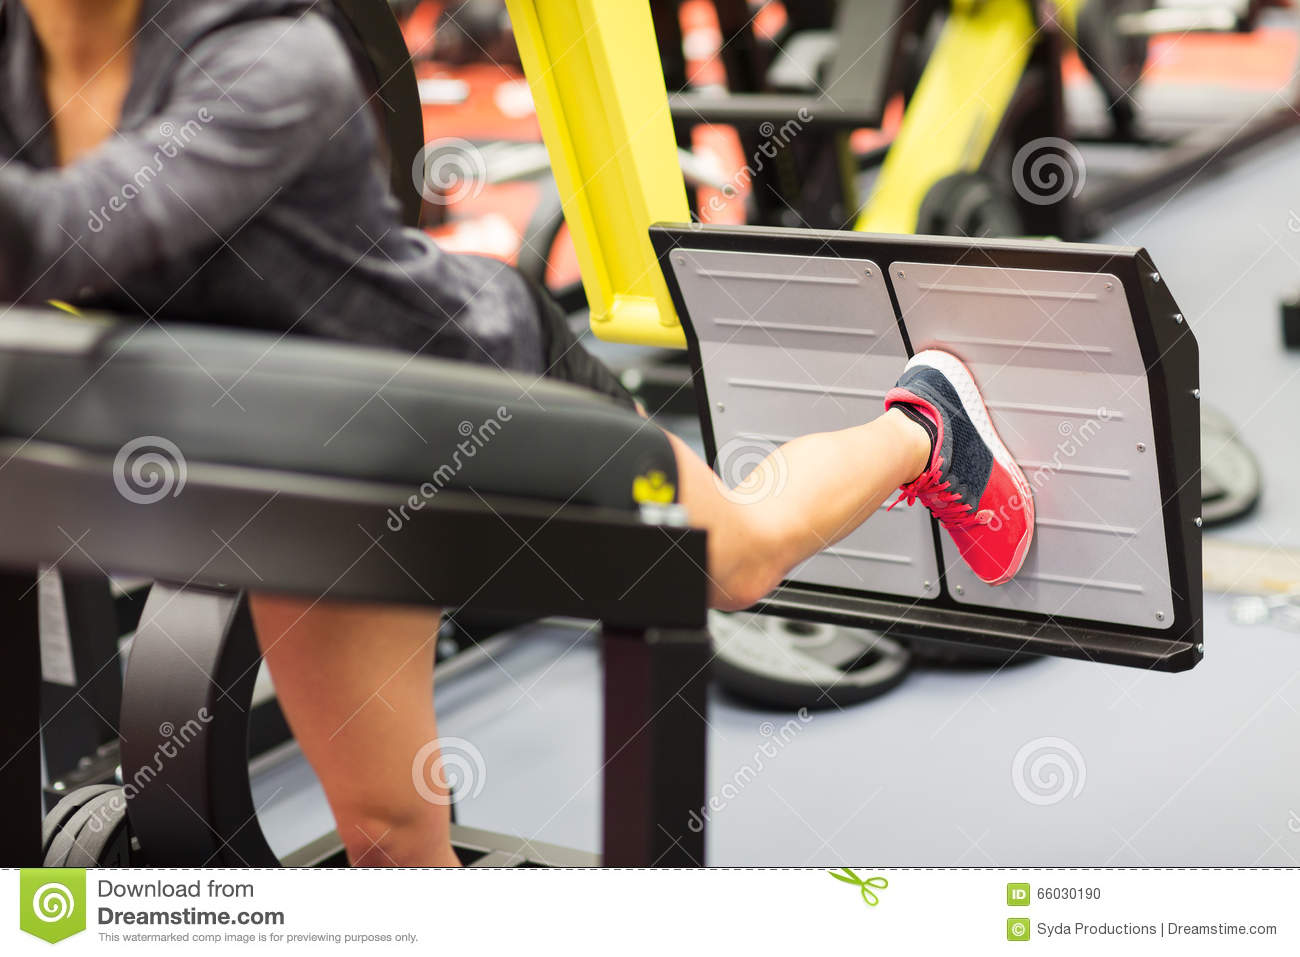 Woman Flexing Muscles On Leg Press Machine In Gym Stock Photo